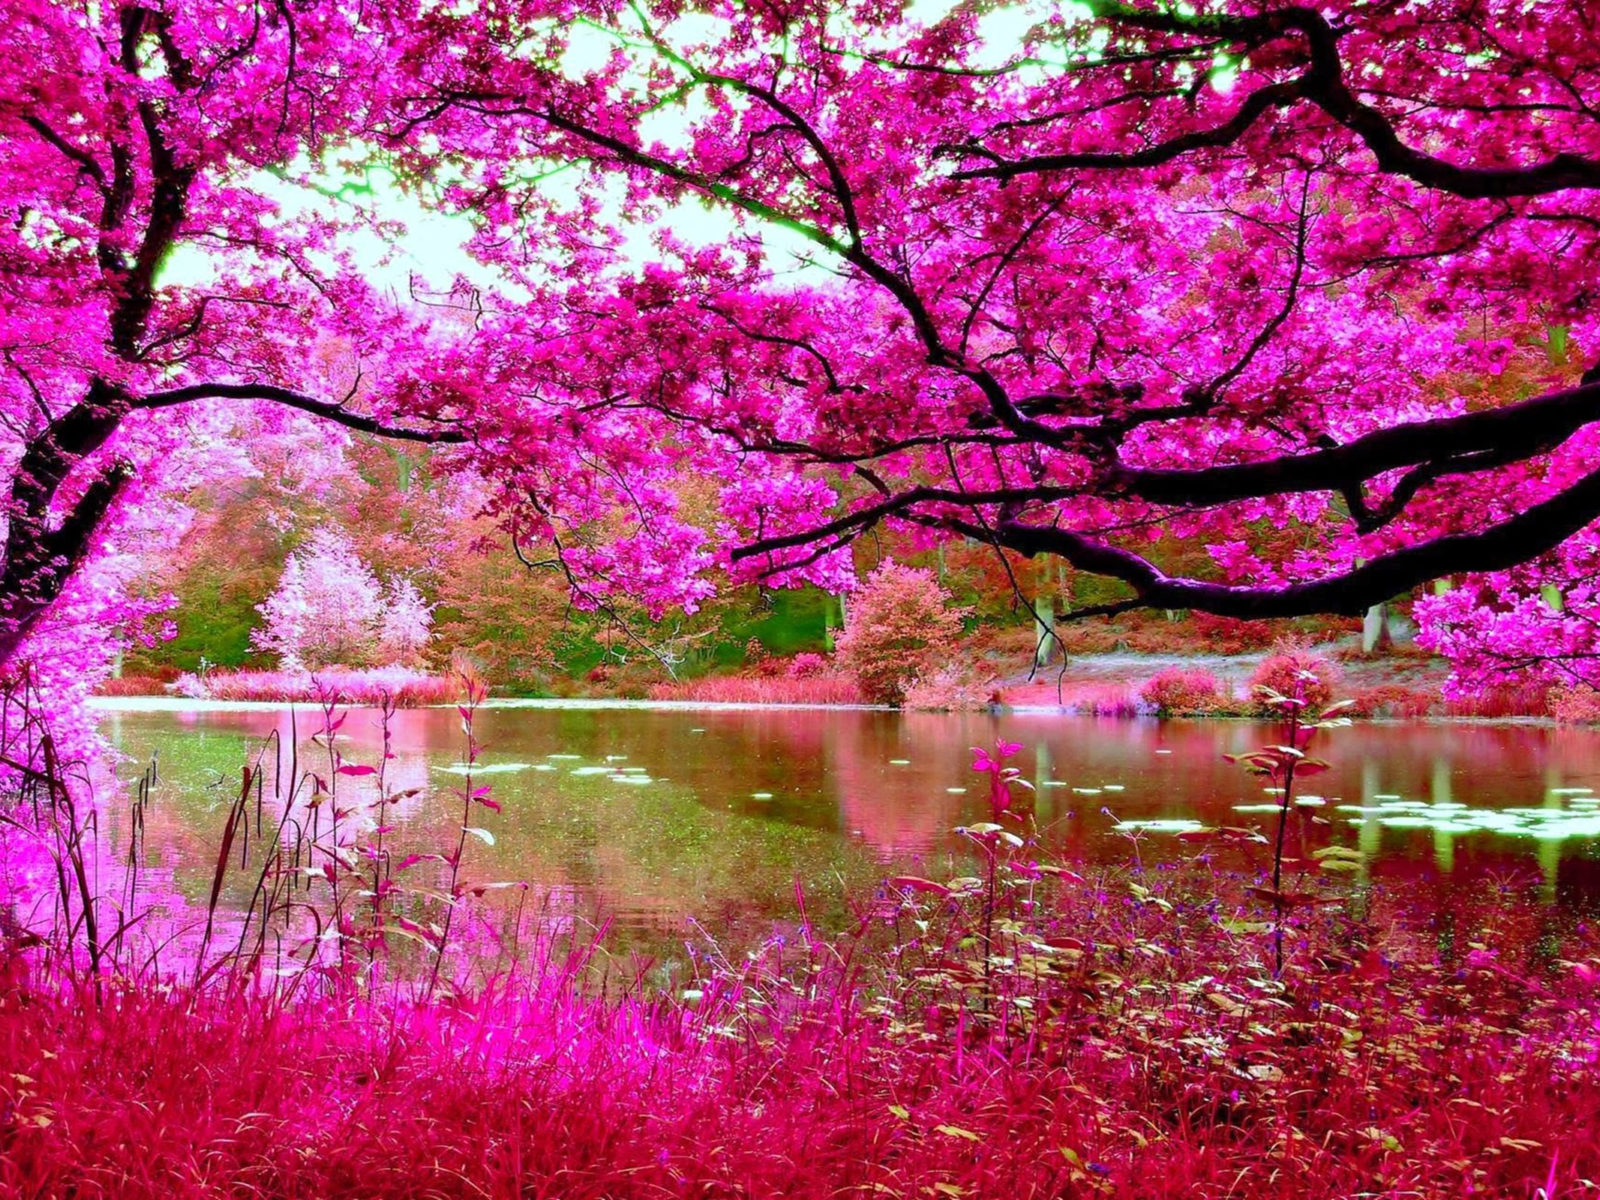 Cherry Blossoms Spring Pink Cherry Tree River Nature Hd Wallpapers 256x1600